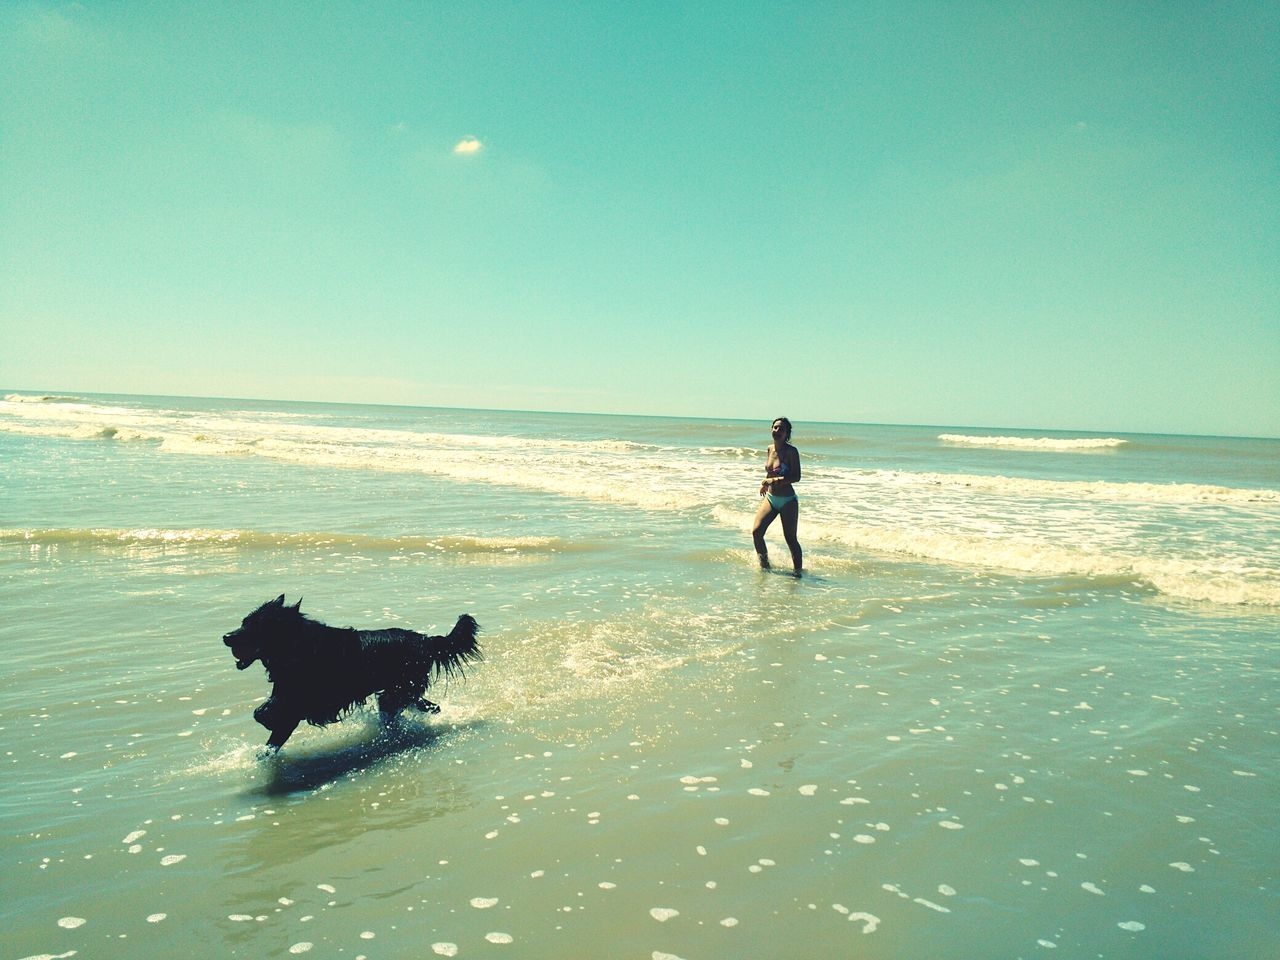 Daughter & dog. Sea Dog Beach Domestic Animals Pets Mammal Sky Running Horizon Over Water Water NatureNature_collection Shore Motion One Animal Two People Beauty In Nature Full Length Seascape Sea_collection Having A Good Time Ball Buenos Aires, Argentina  Sky_collection